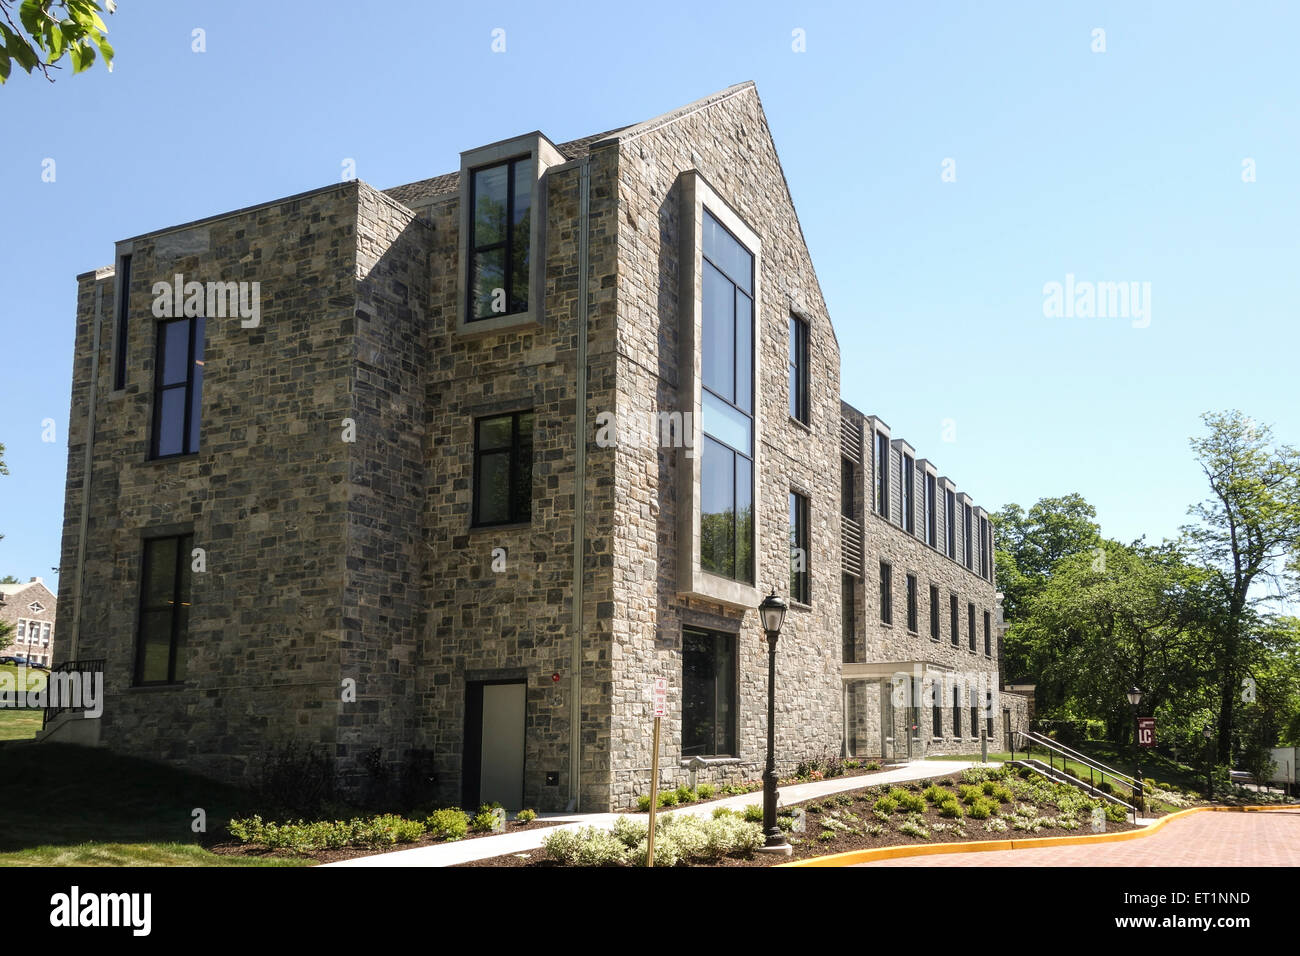 Oechsle Center for Global Education, Lafayette College, private liberal arts college, Easton, Pennsylvania, USA. - Stock Image